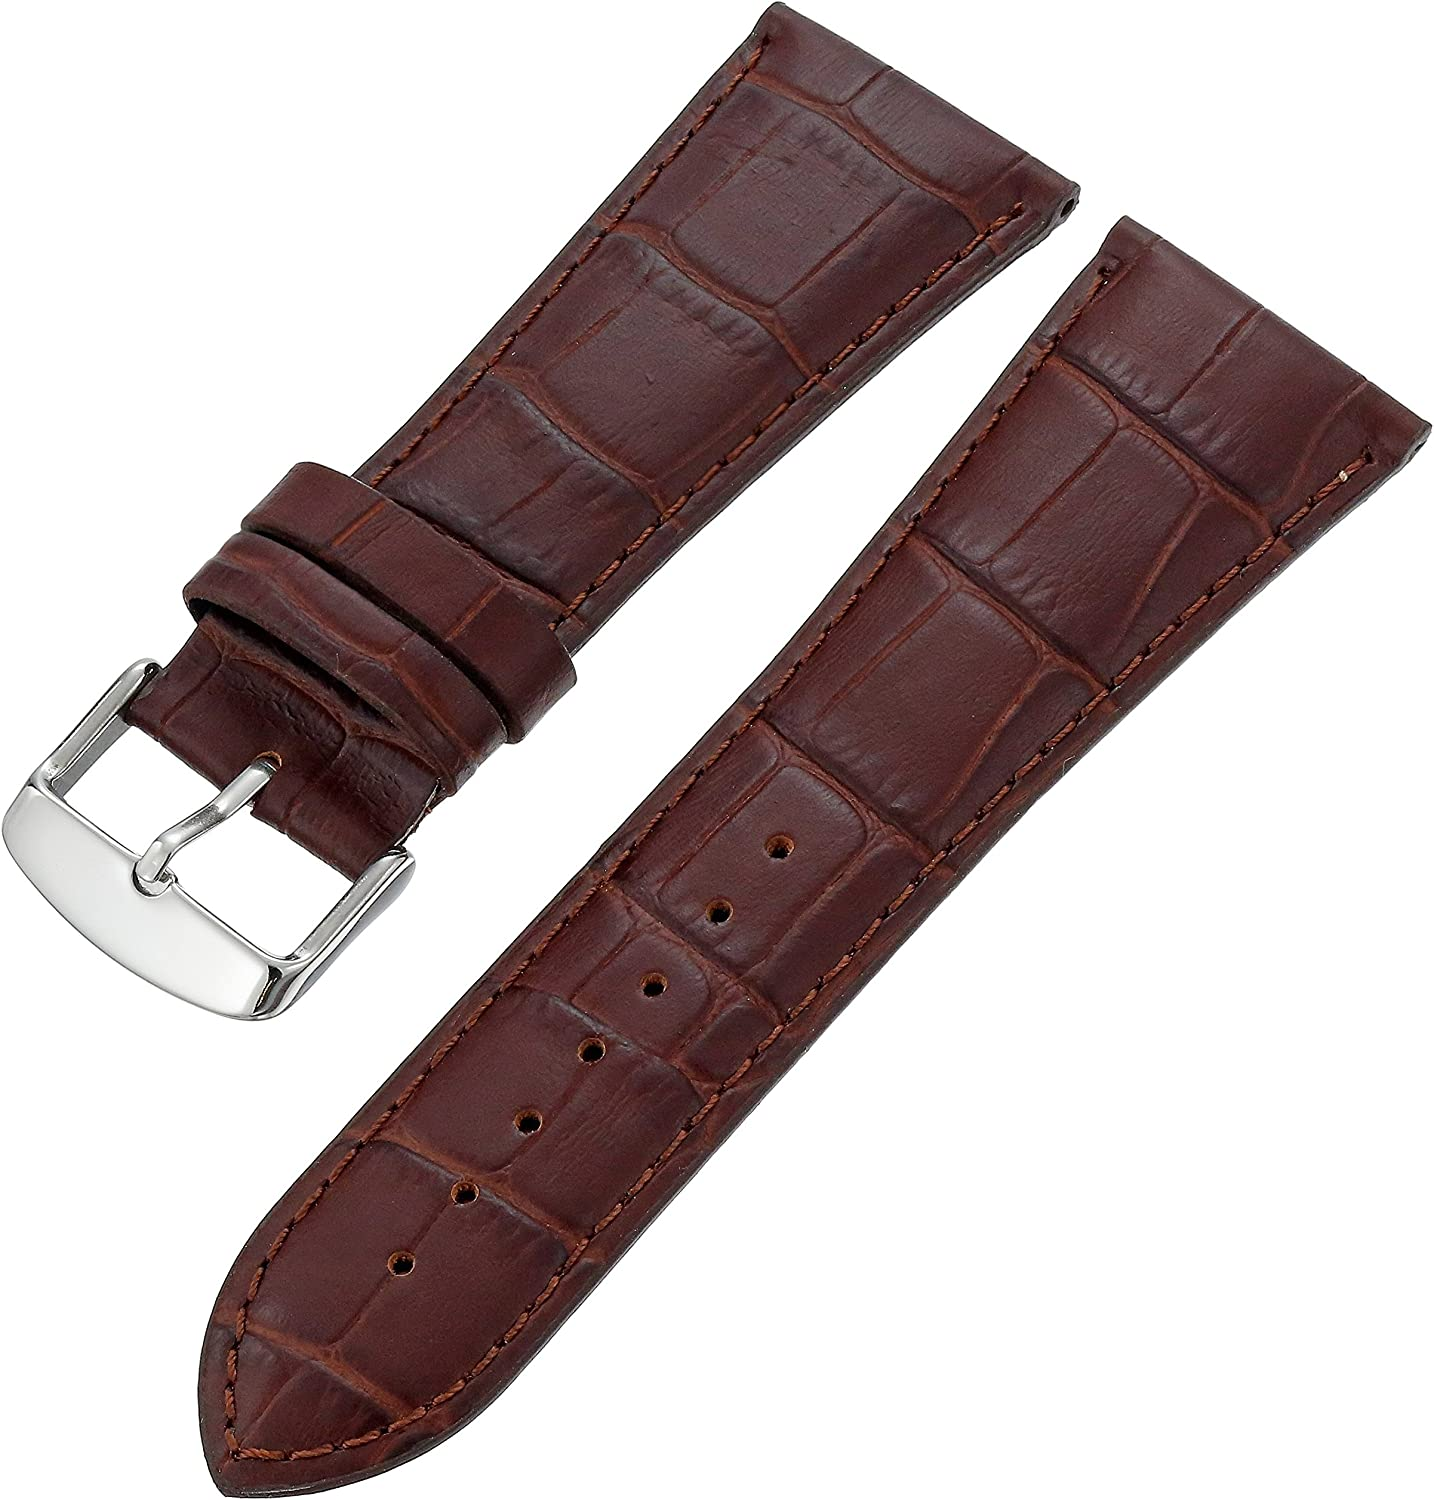 Hadley-Roma Men's MSM898RA-180 18-mm Black Alligator Grain Leather Watch Strap